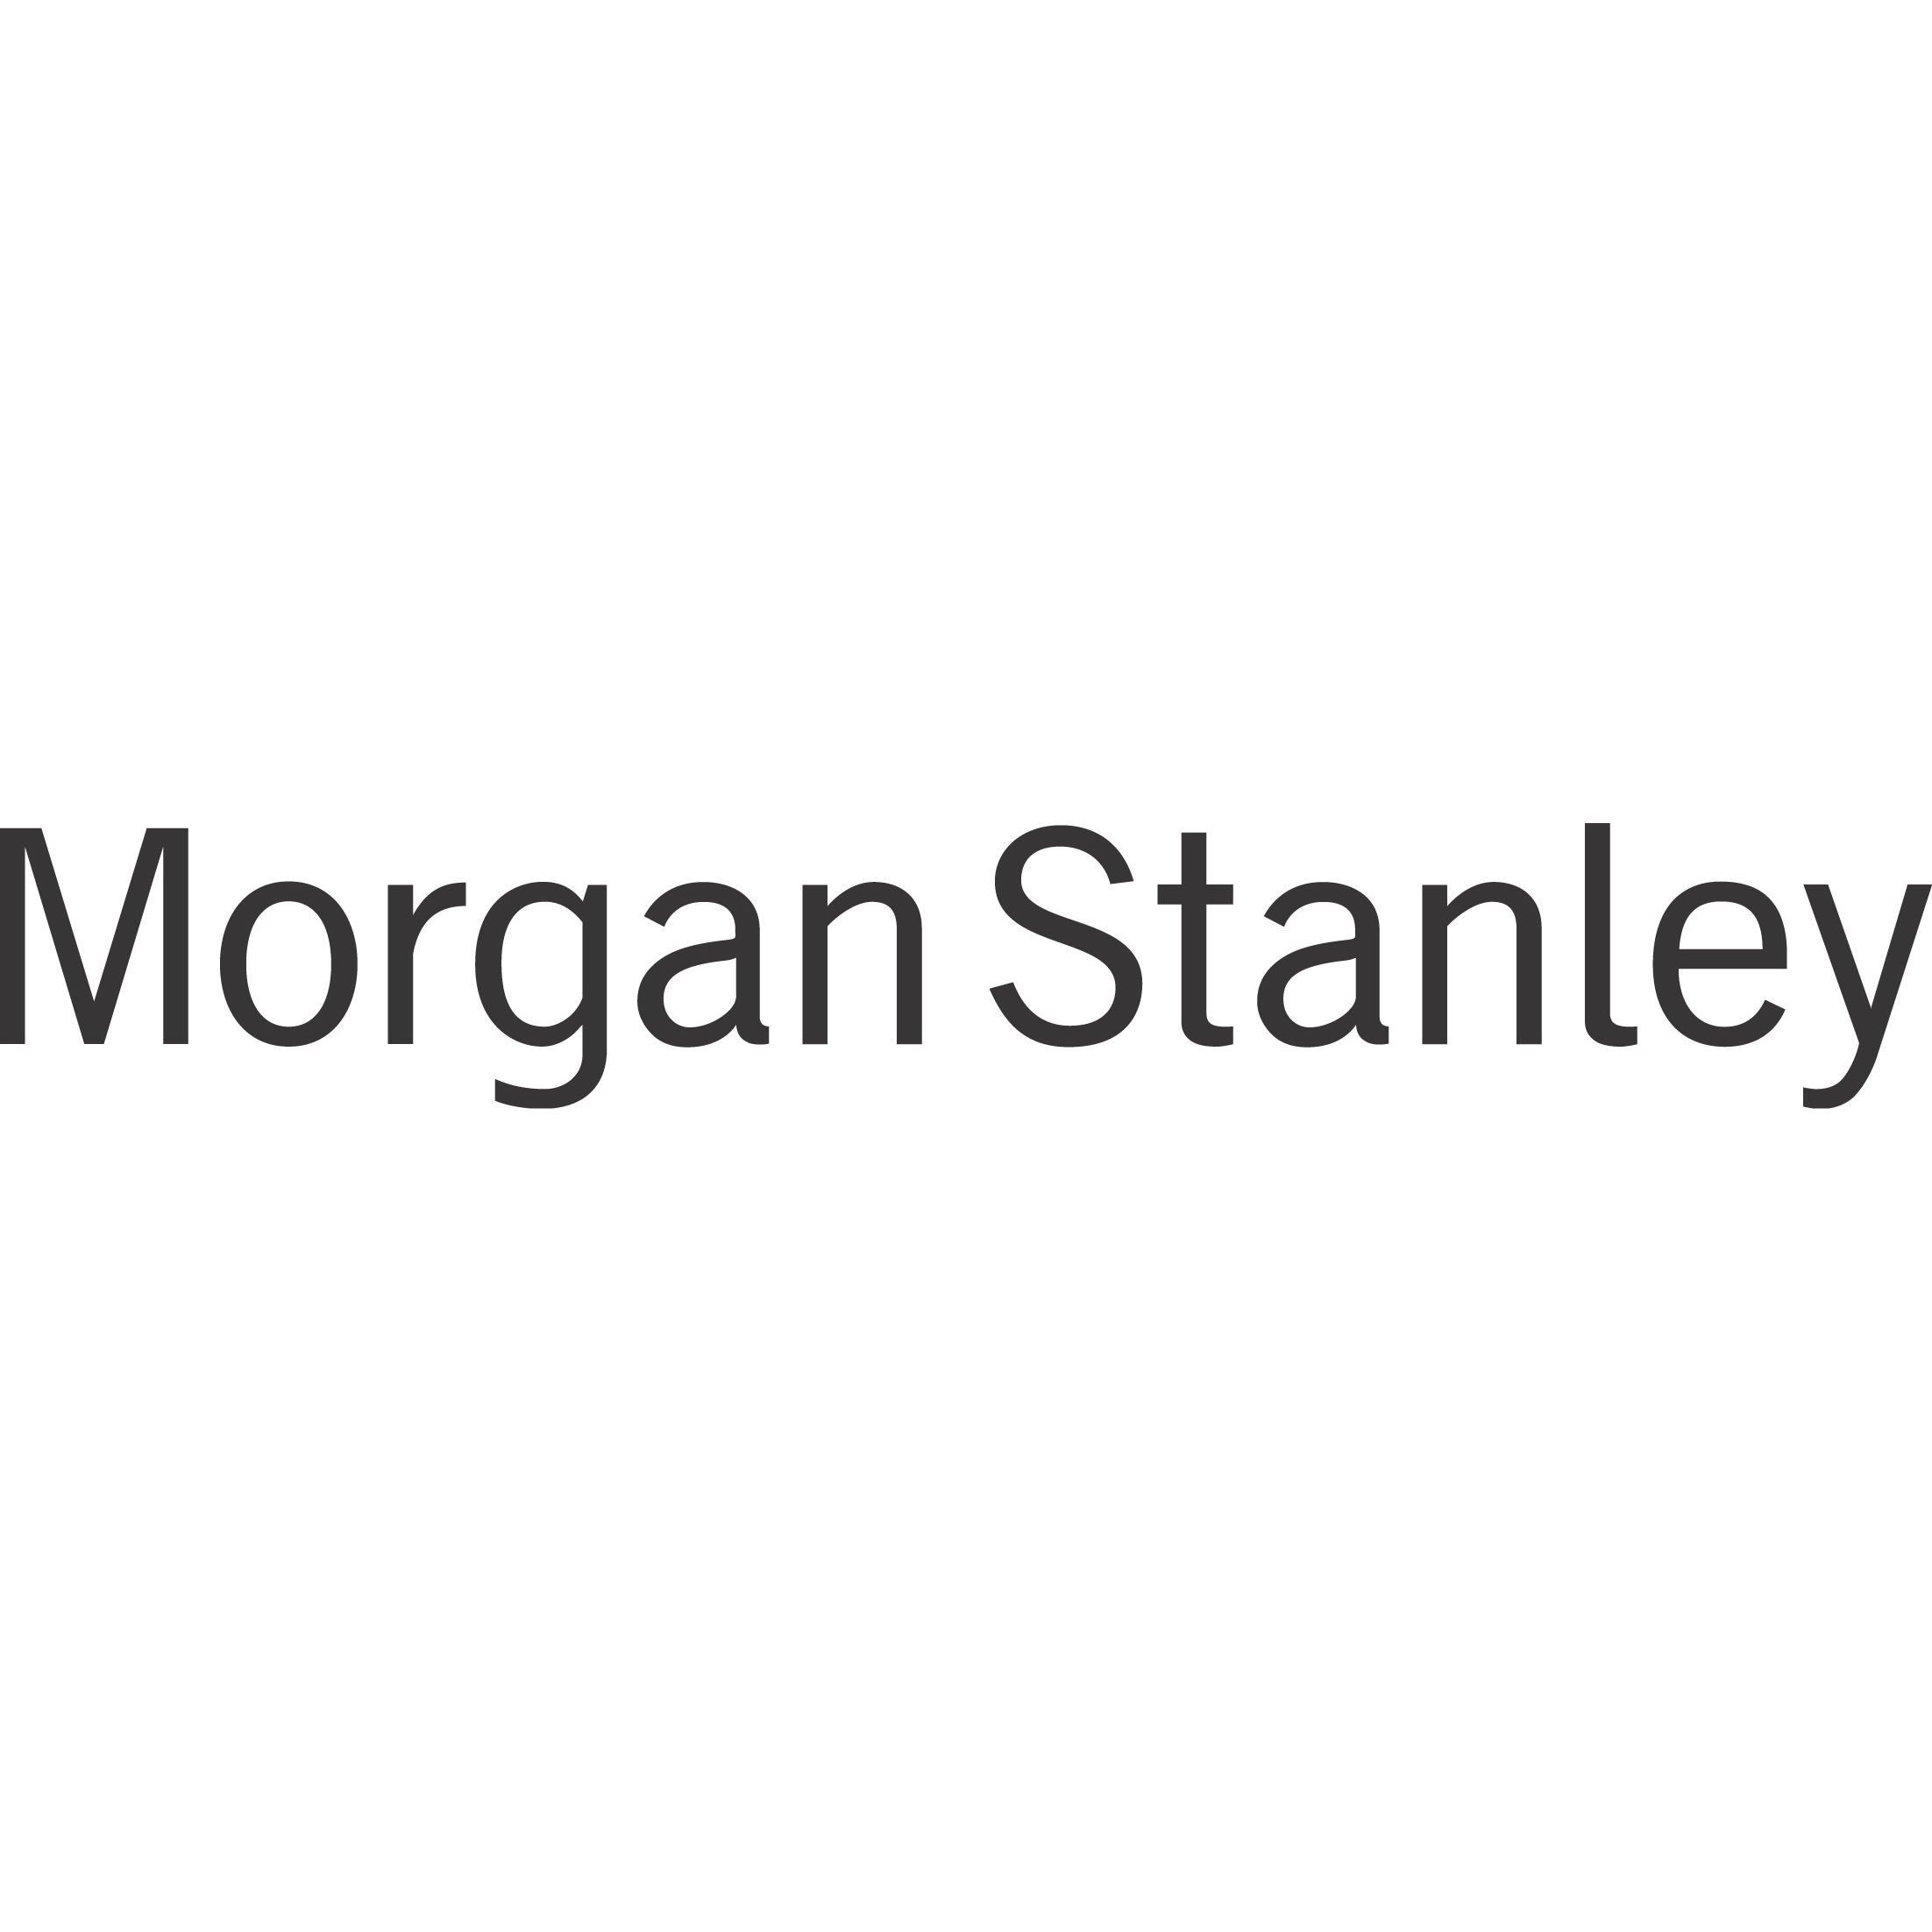 Lowell Eckstein - Morgan Stanley | Financial Advisor in Palm Beach Gardens,Florida